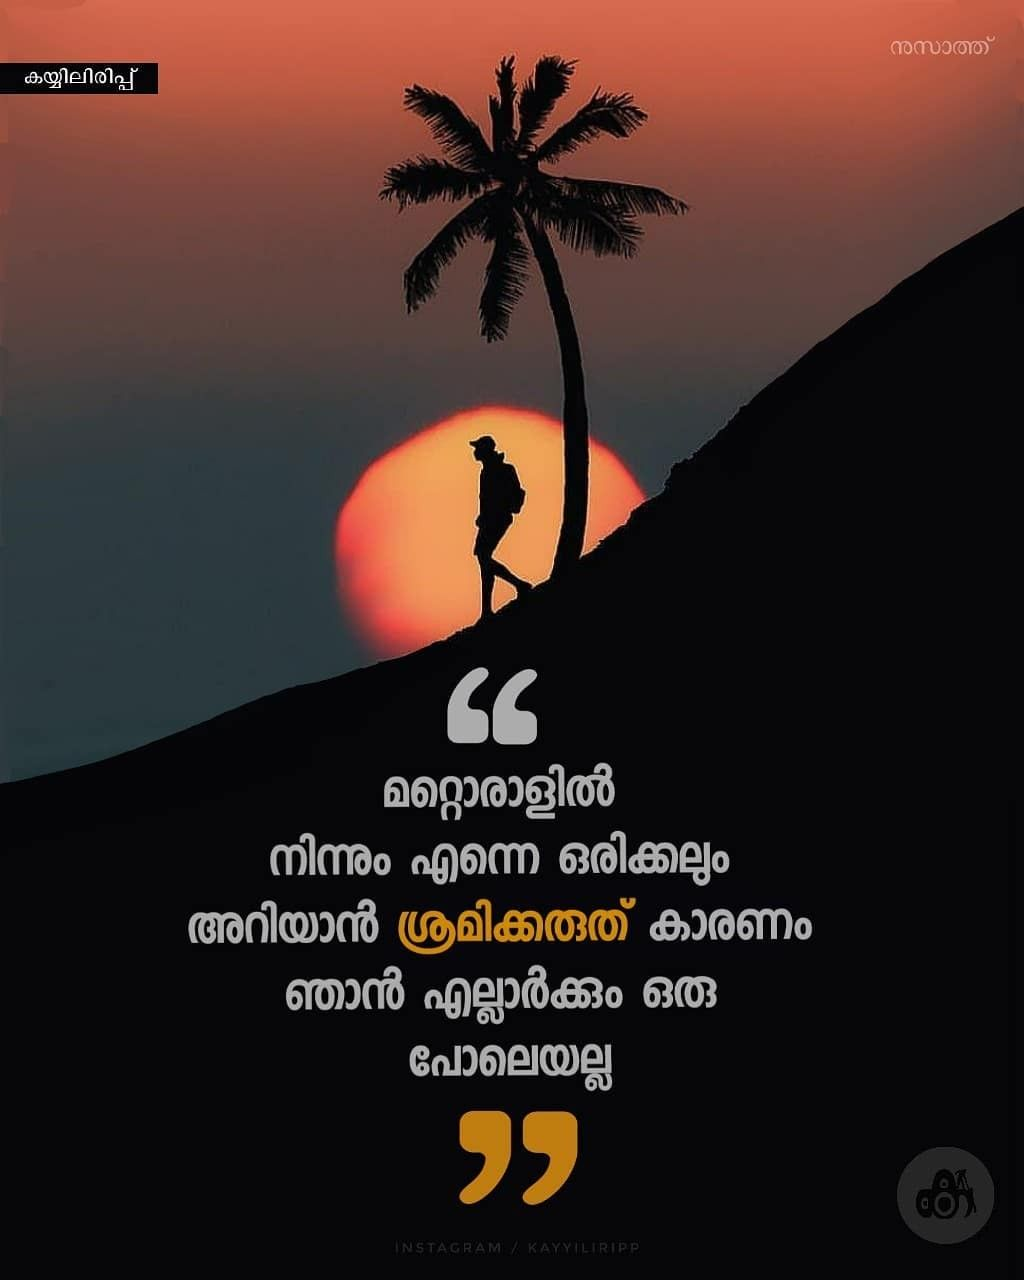 Engal Engne Aano Athupole Erikum Tta Malayalam Quotes Message Quotes Boxing Quotes